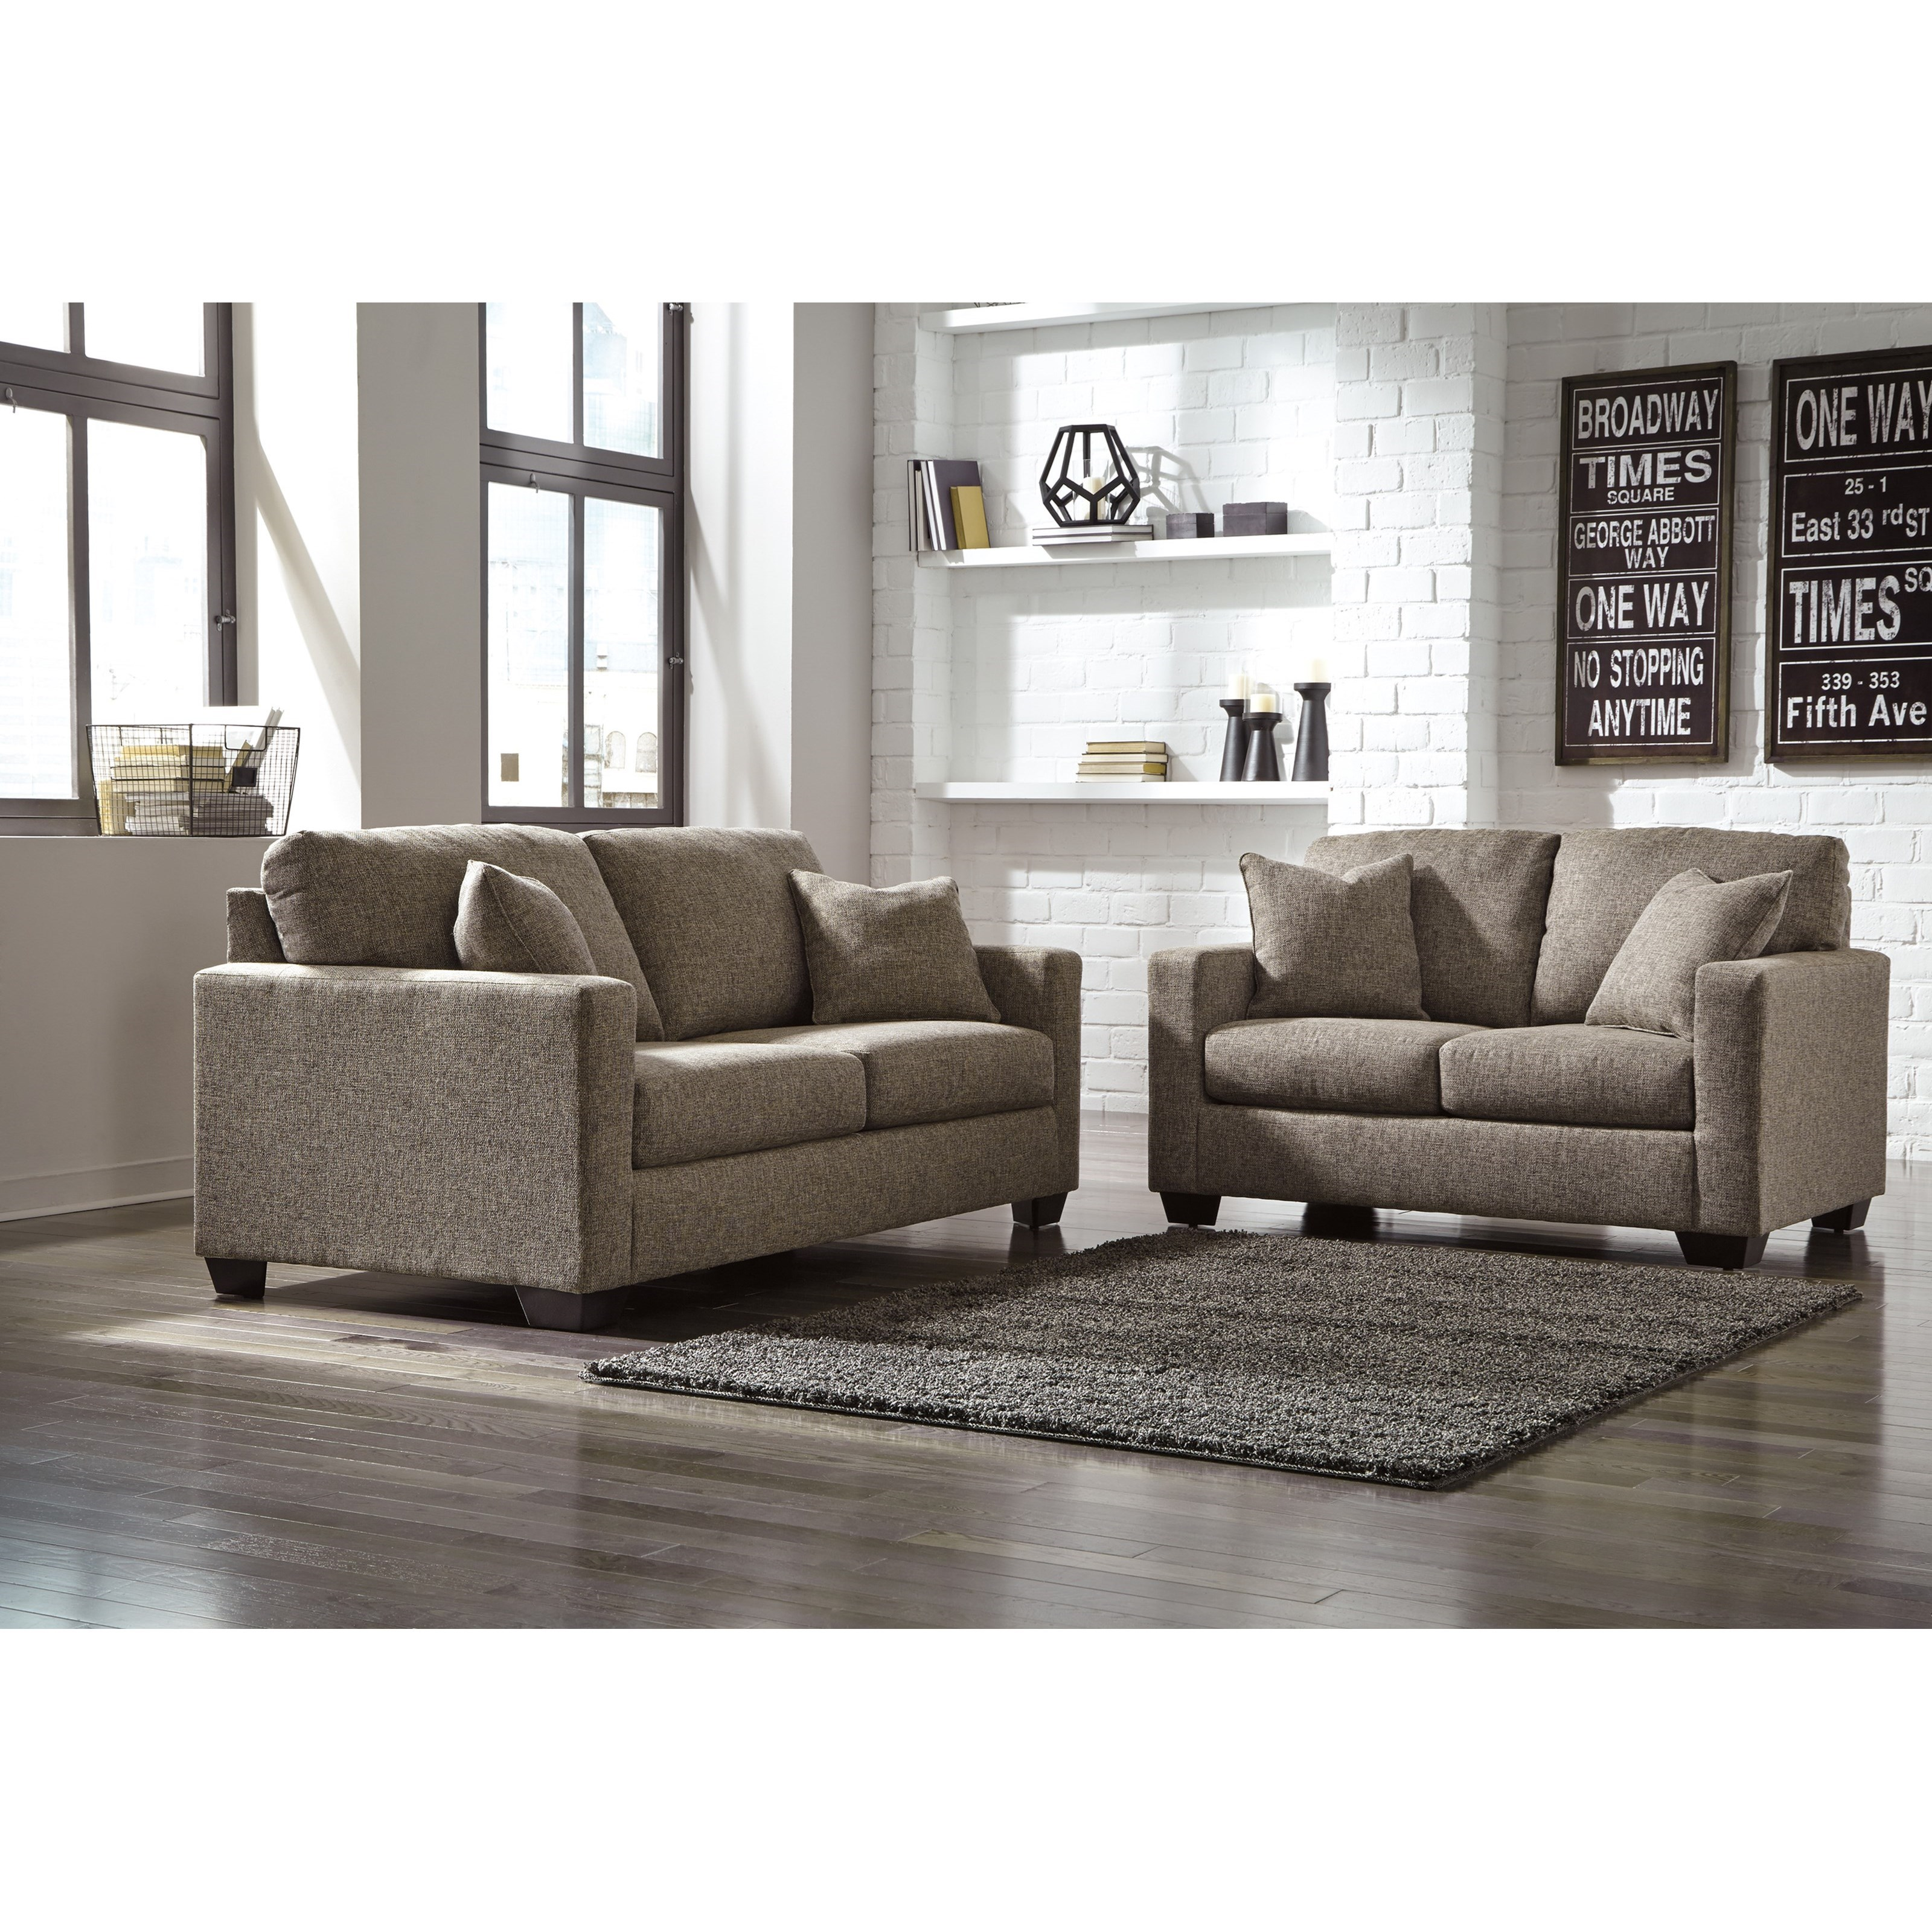 Ashley Furniture Hearne Stationary Living Room Group Del Sol Furniture Stationary Living